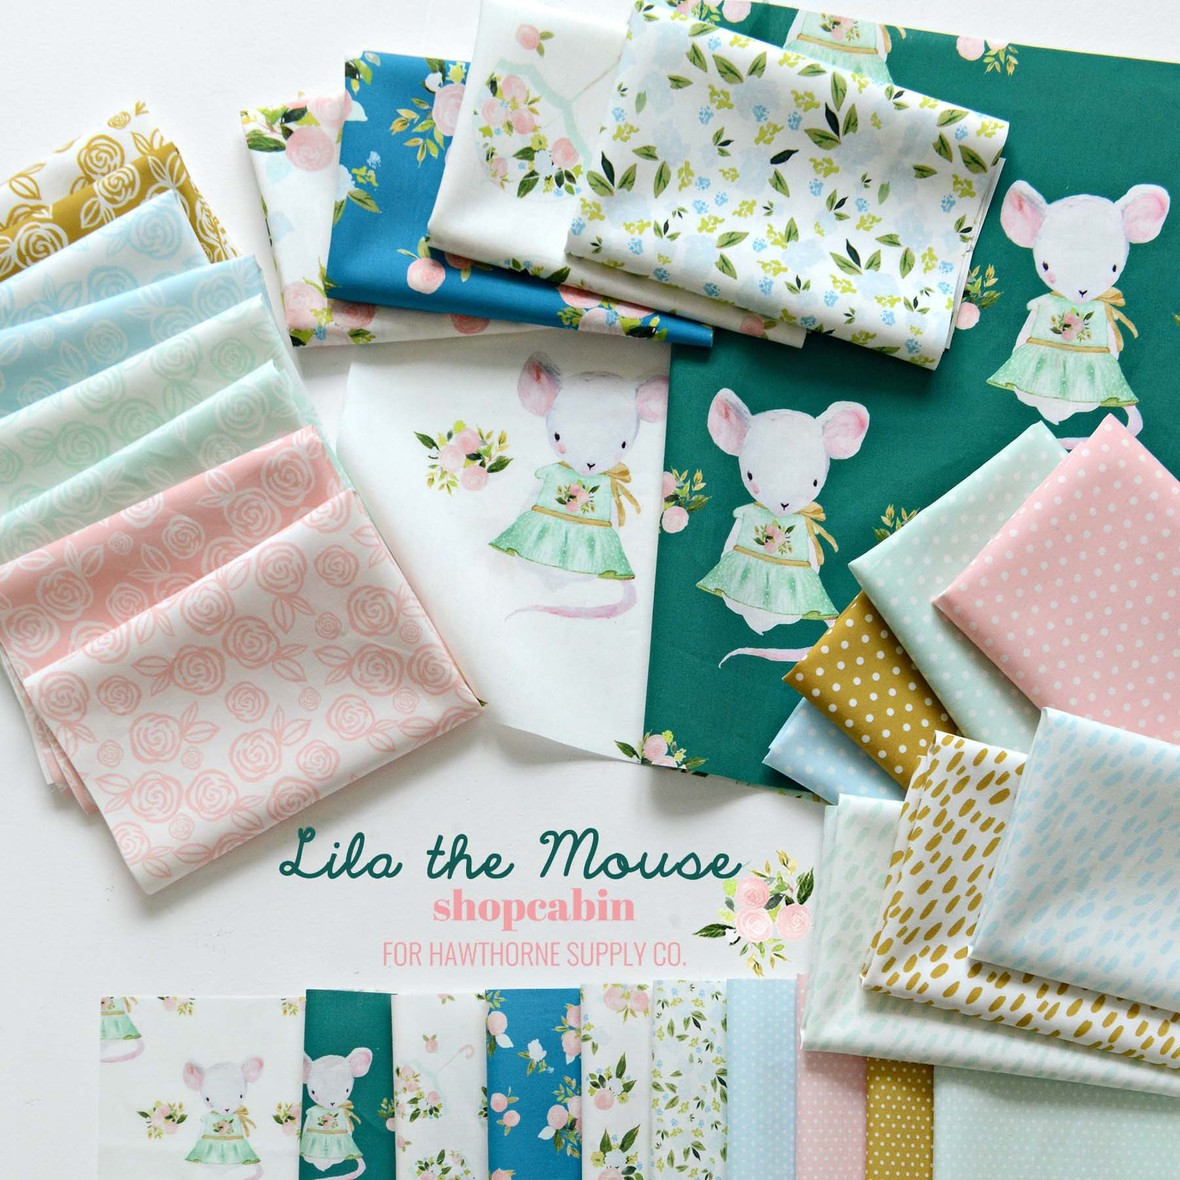 Lila the Mouse Shopcabin fabric at Hawthorne Supply Co